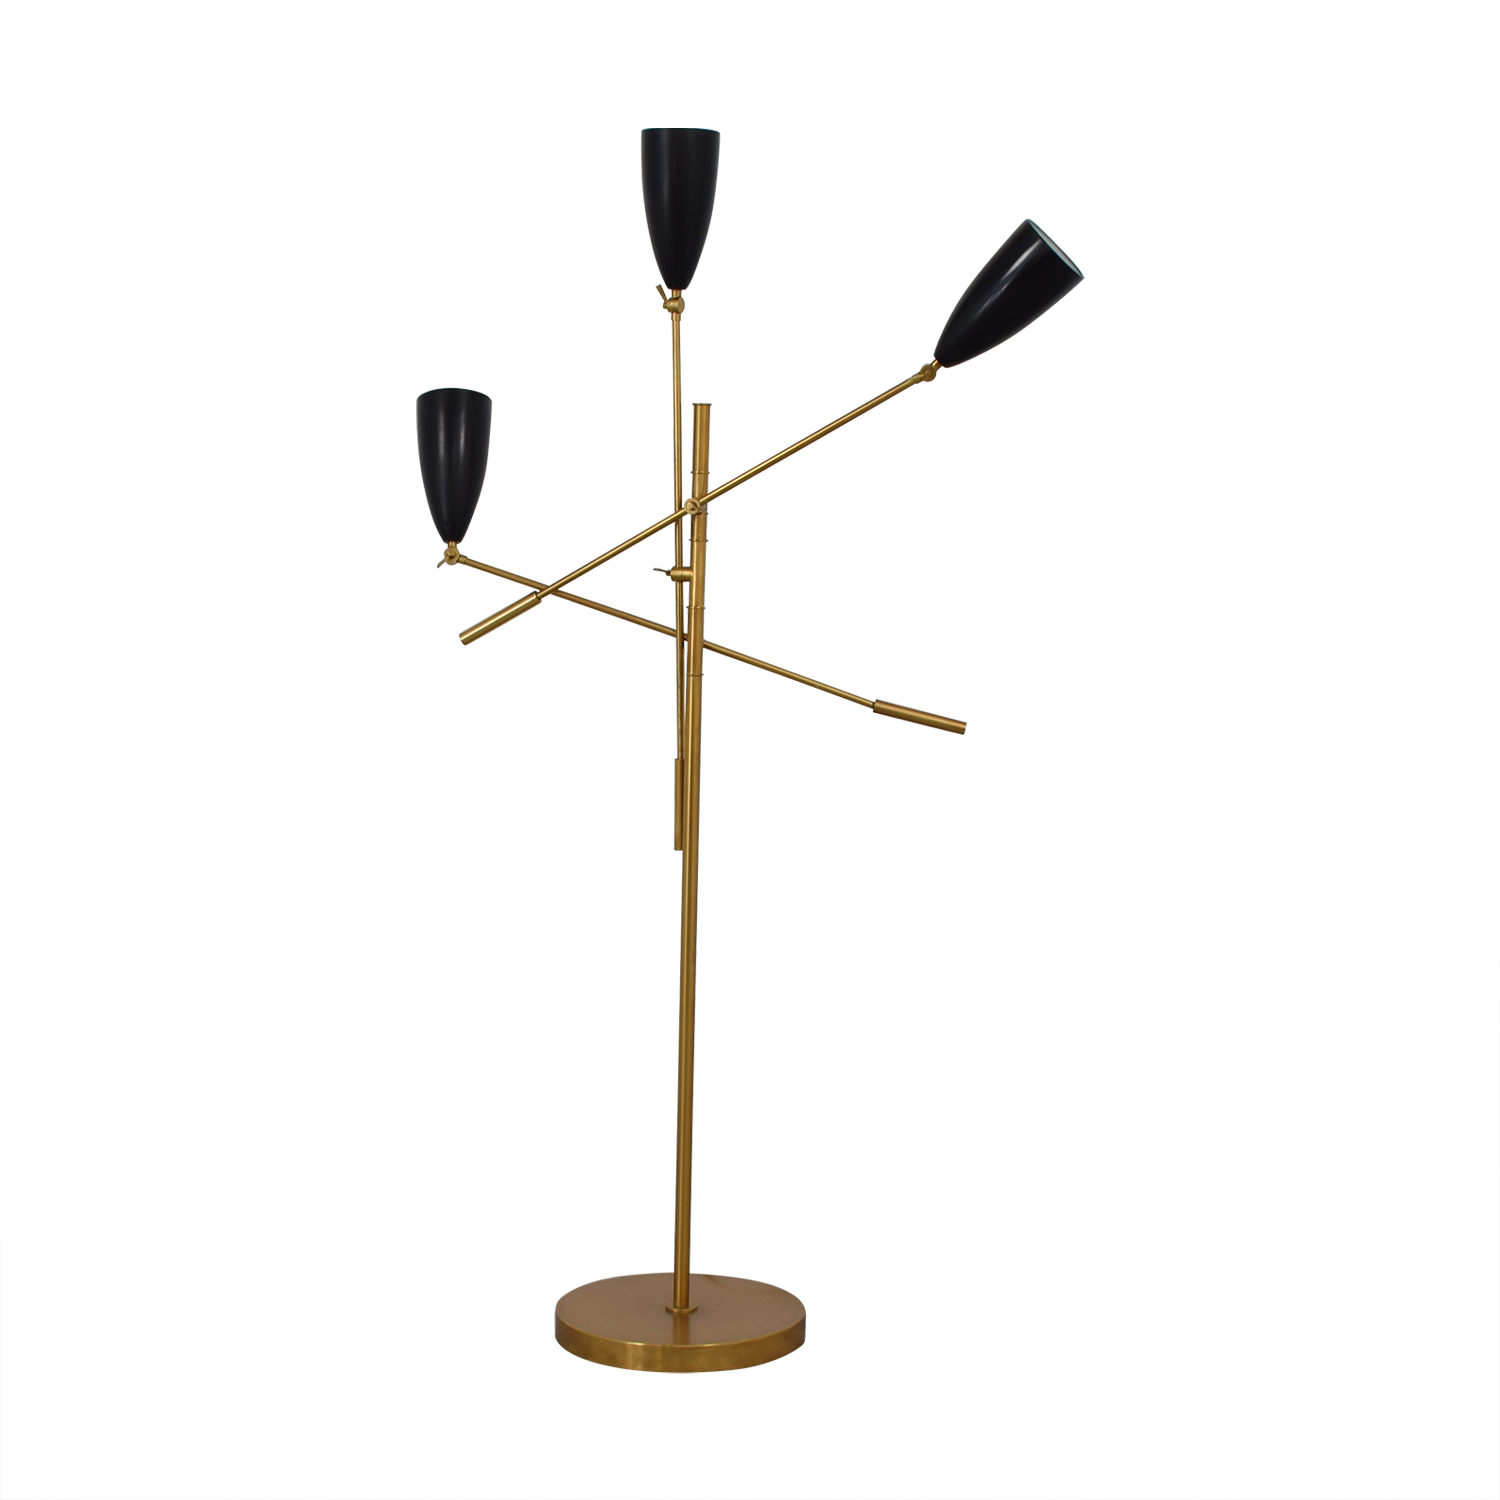 West Elm West Elm Gold and Black Floor Lamp Lamps